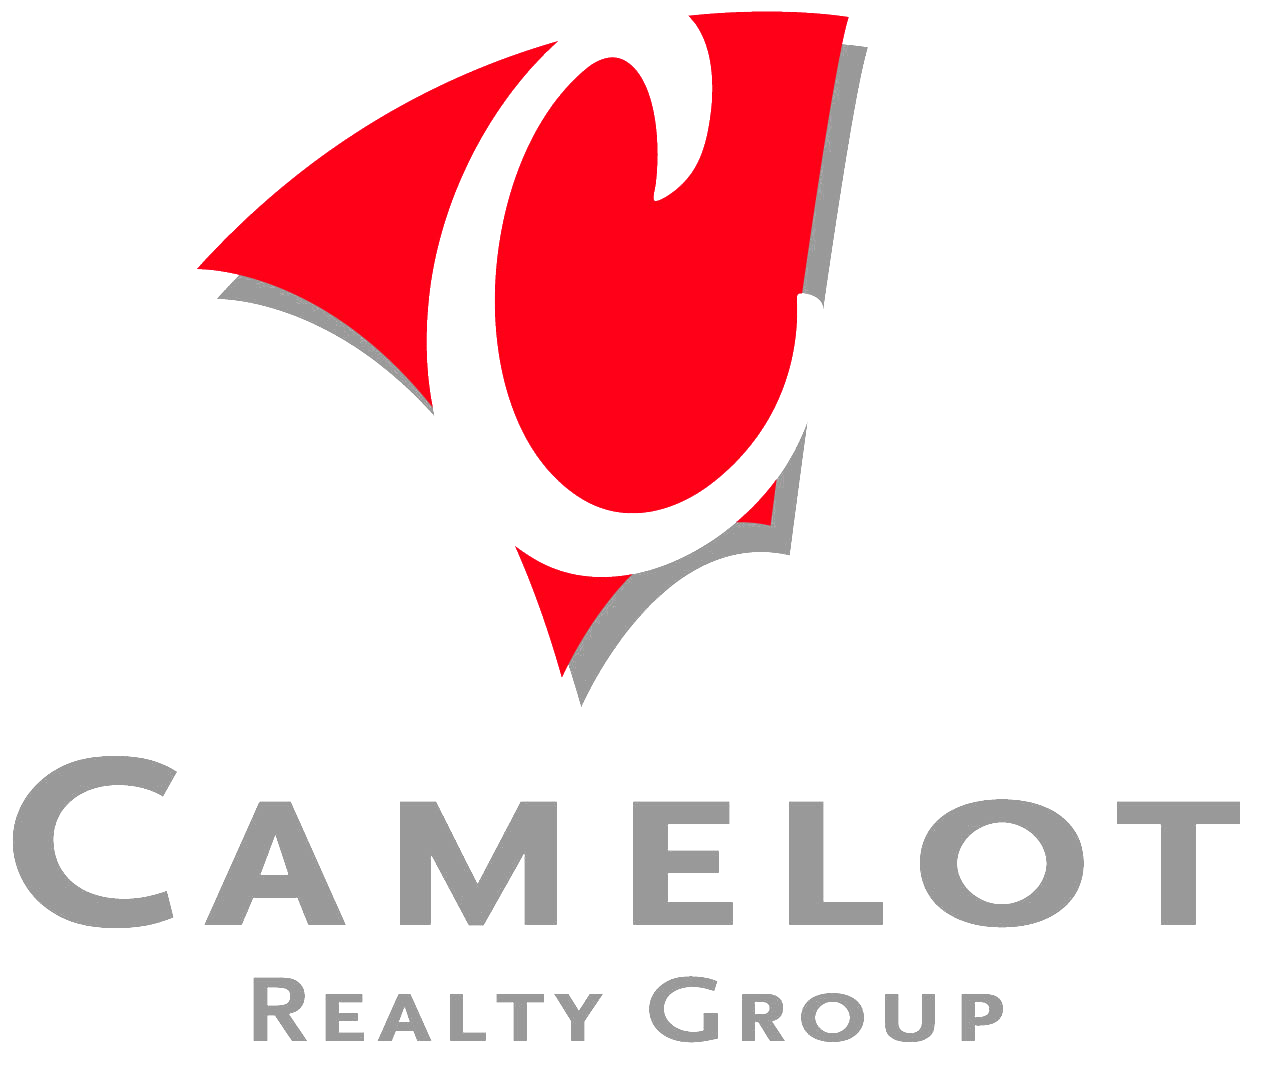 Mary Franco - Camelot Realty Group Logo